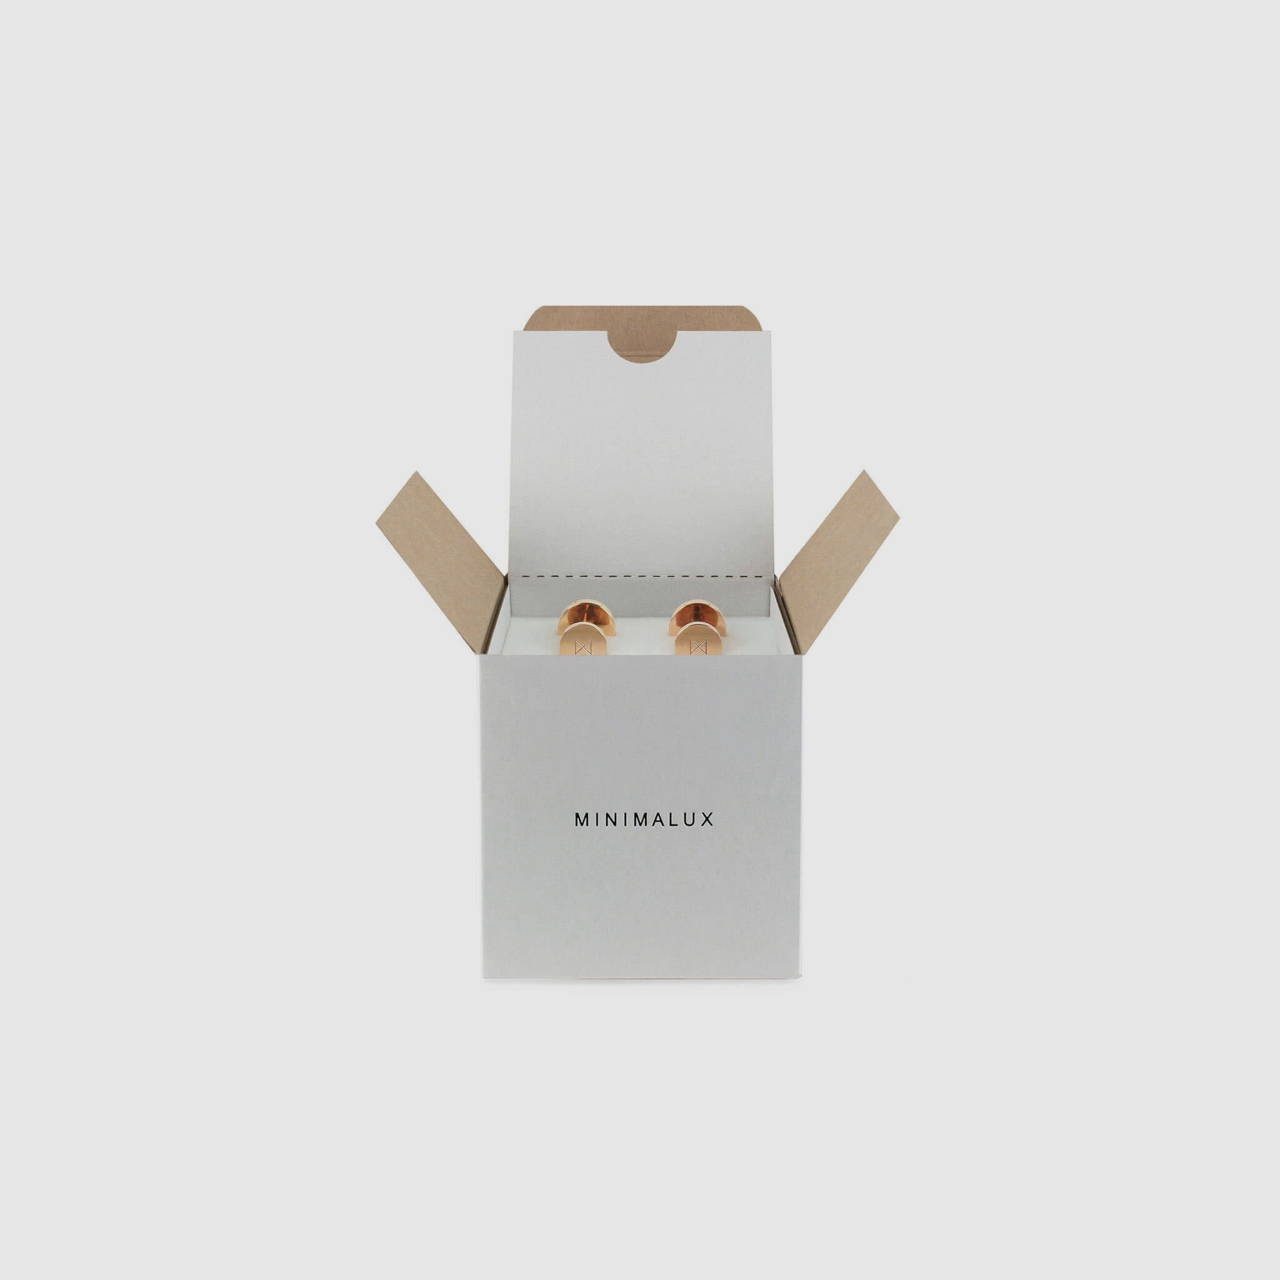 Rose Gold Cufflink packaging